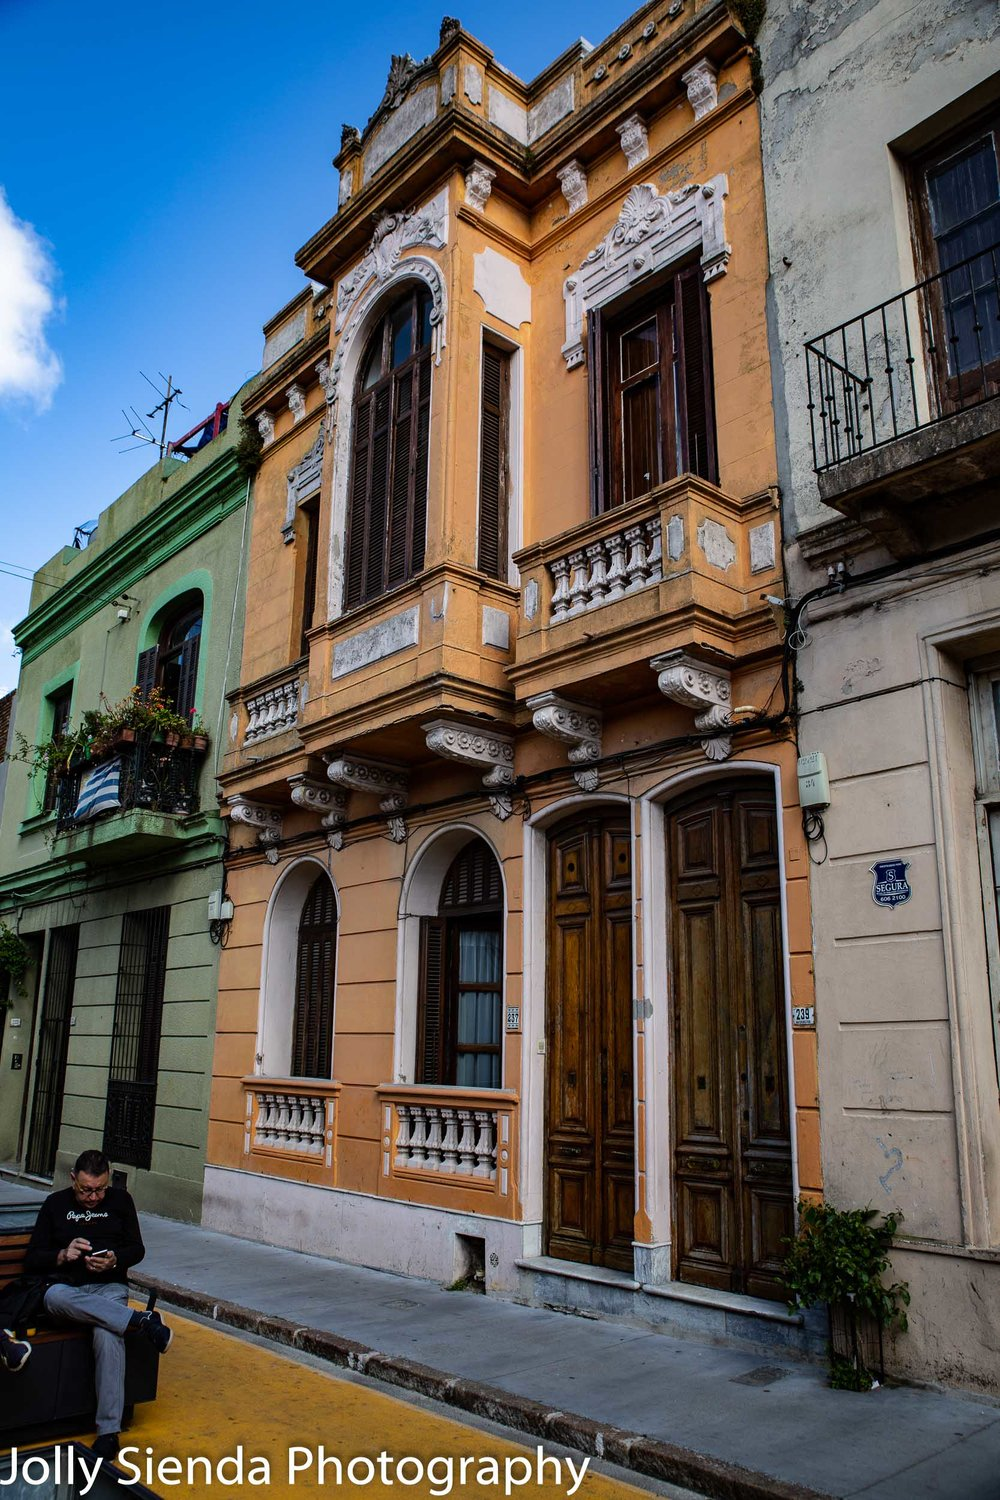 Colonial Spanish architecture, blanconies, and a man checking hi